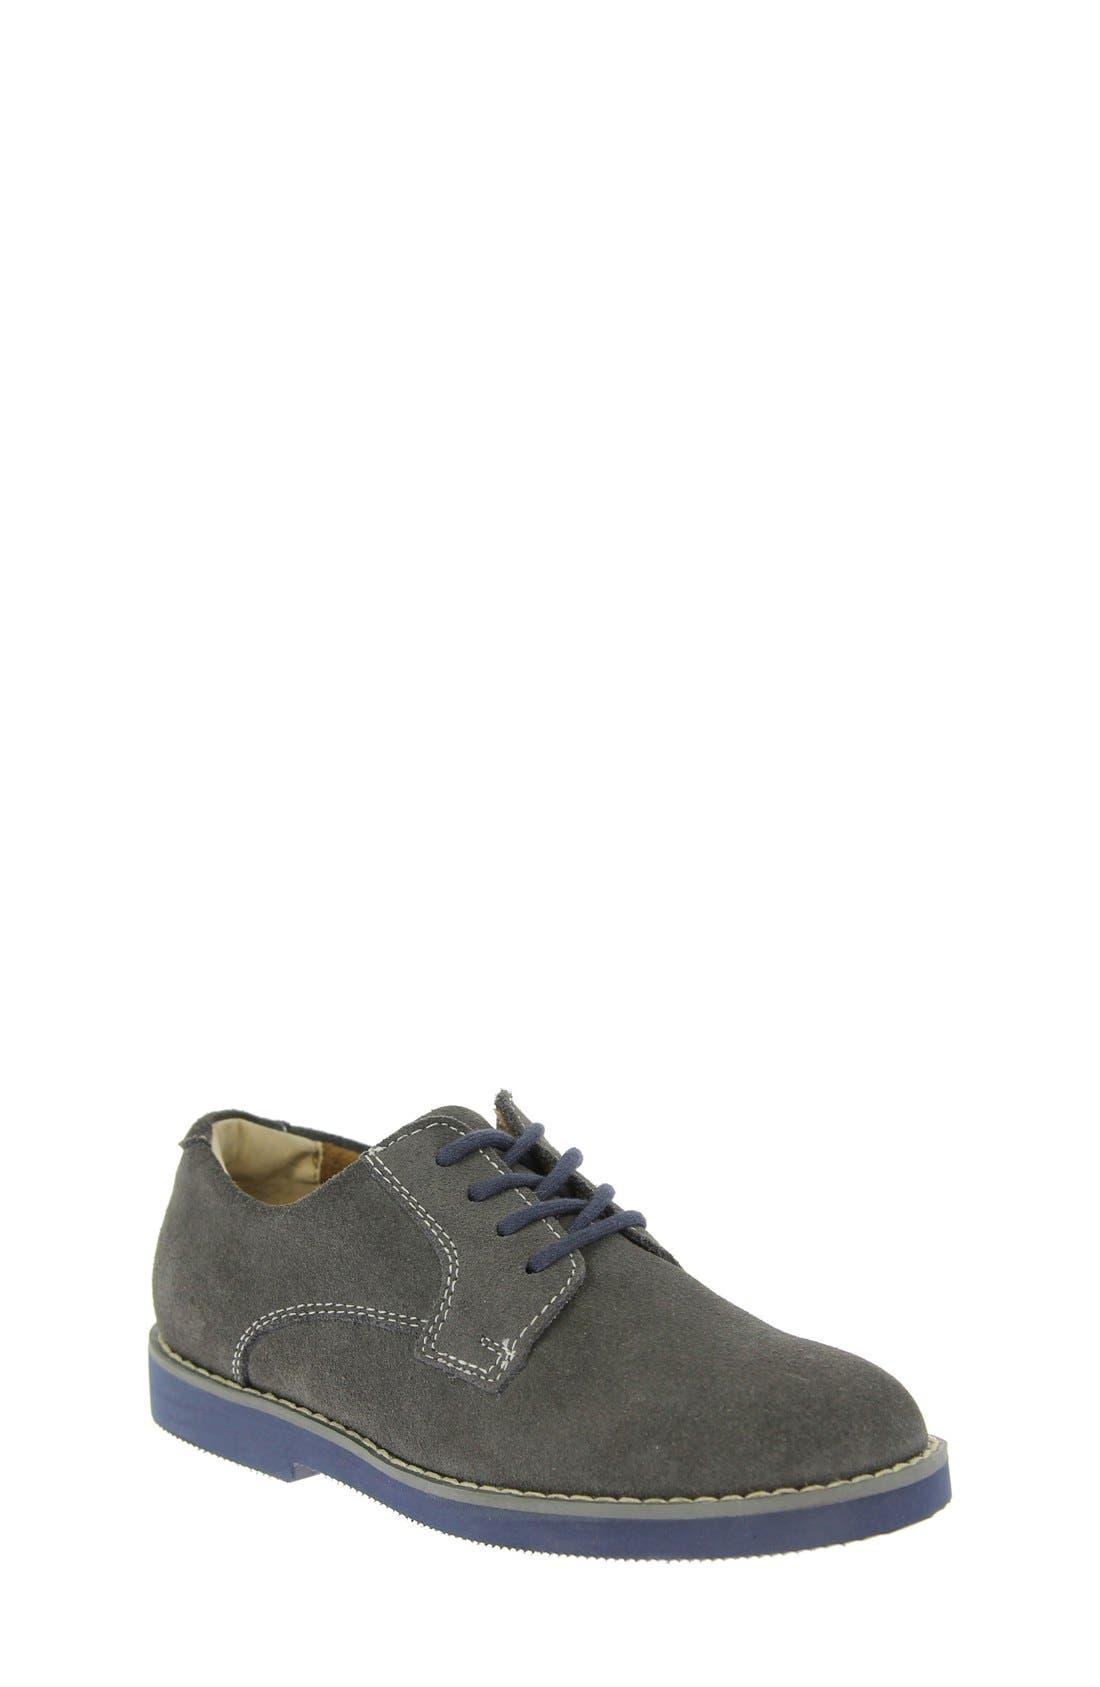 Alternate Image 1 Selected - Florsheim Two Tone Oxford (Toddler, Little Kid & Big Kid)